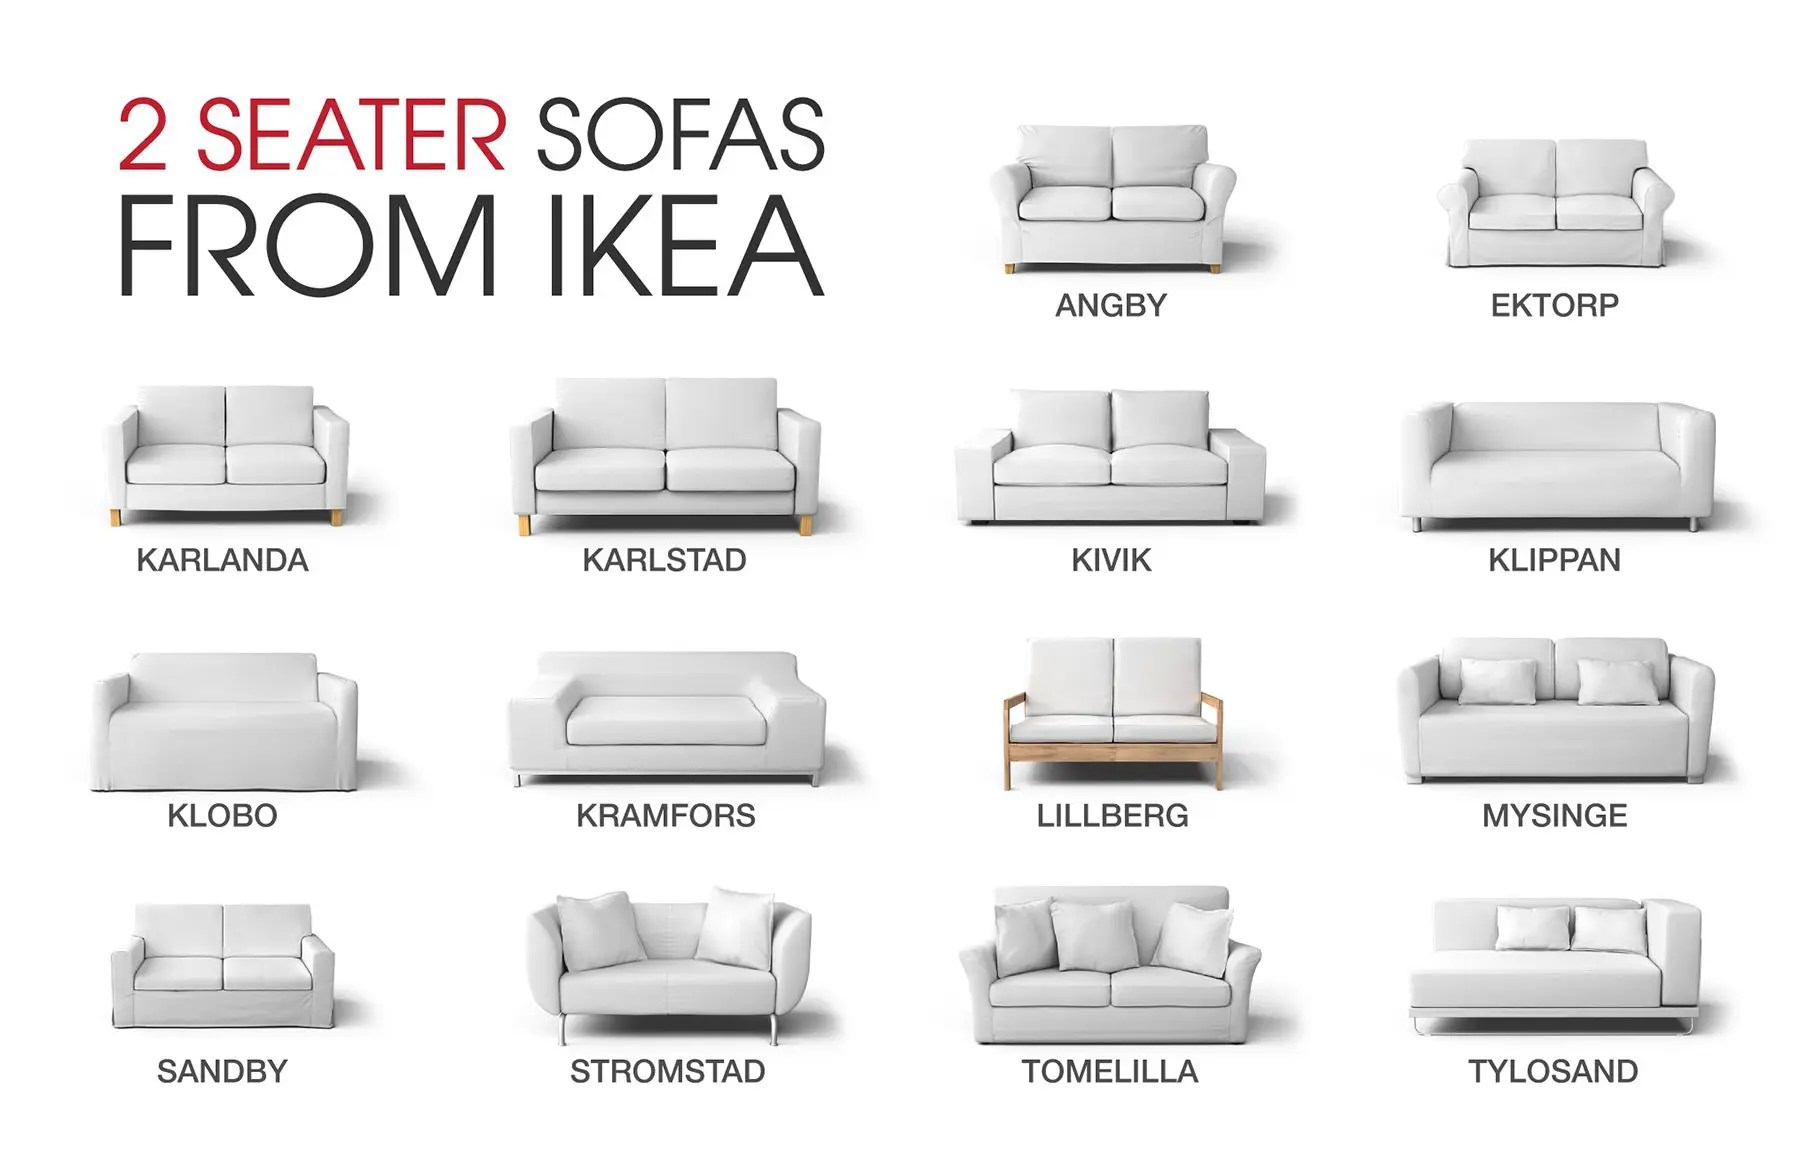 Couches In Ikea Which Ikea 2 Seater Sofa Is This